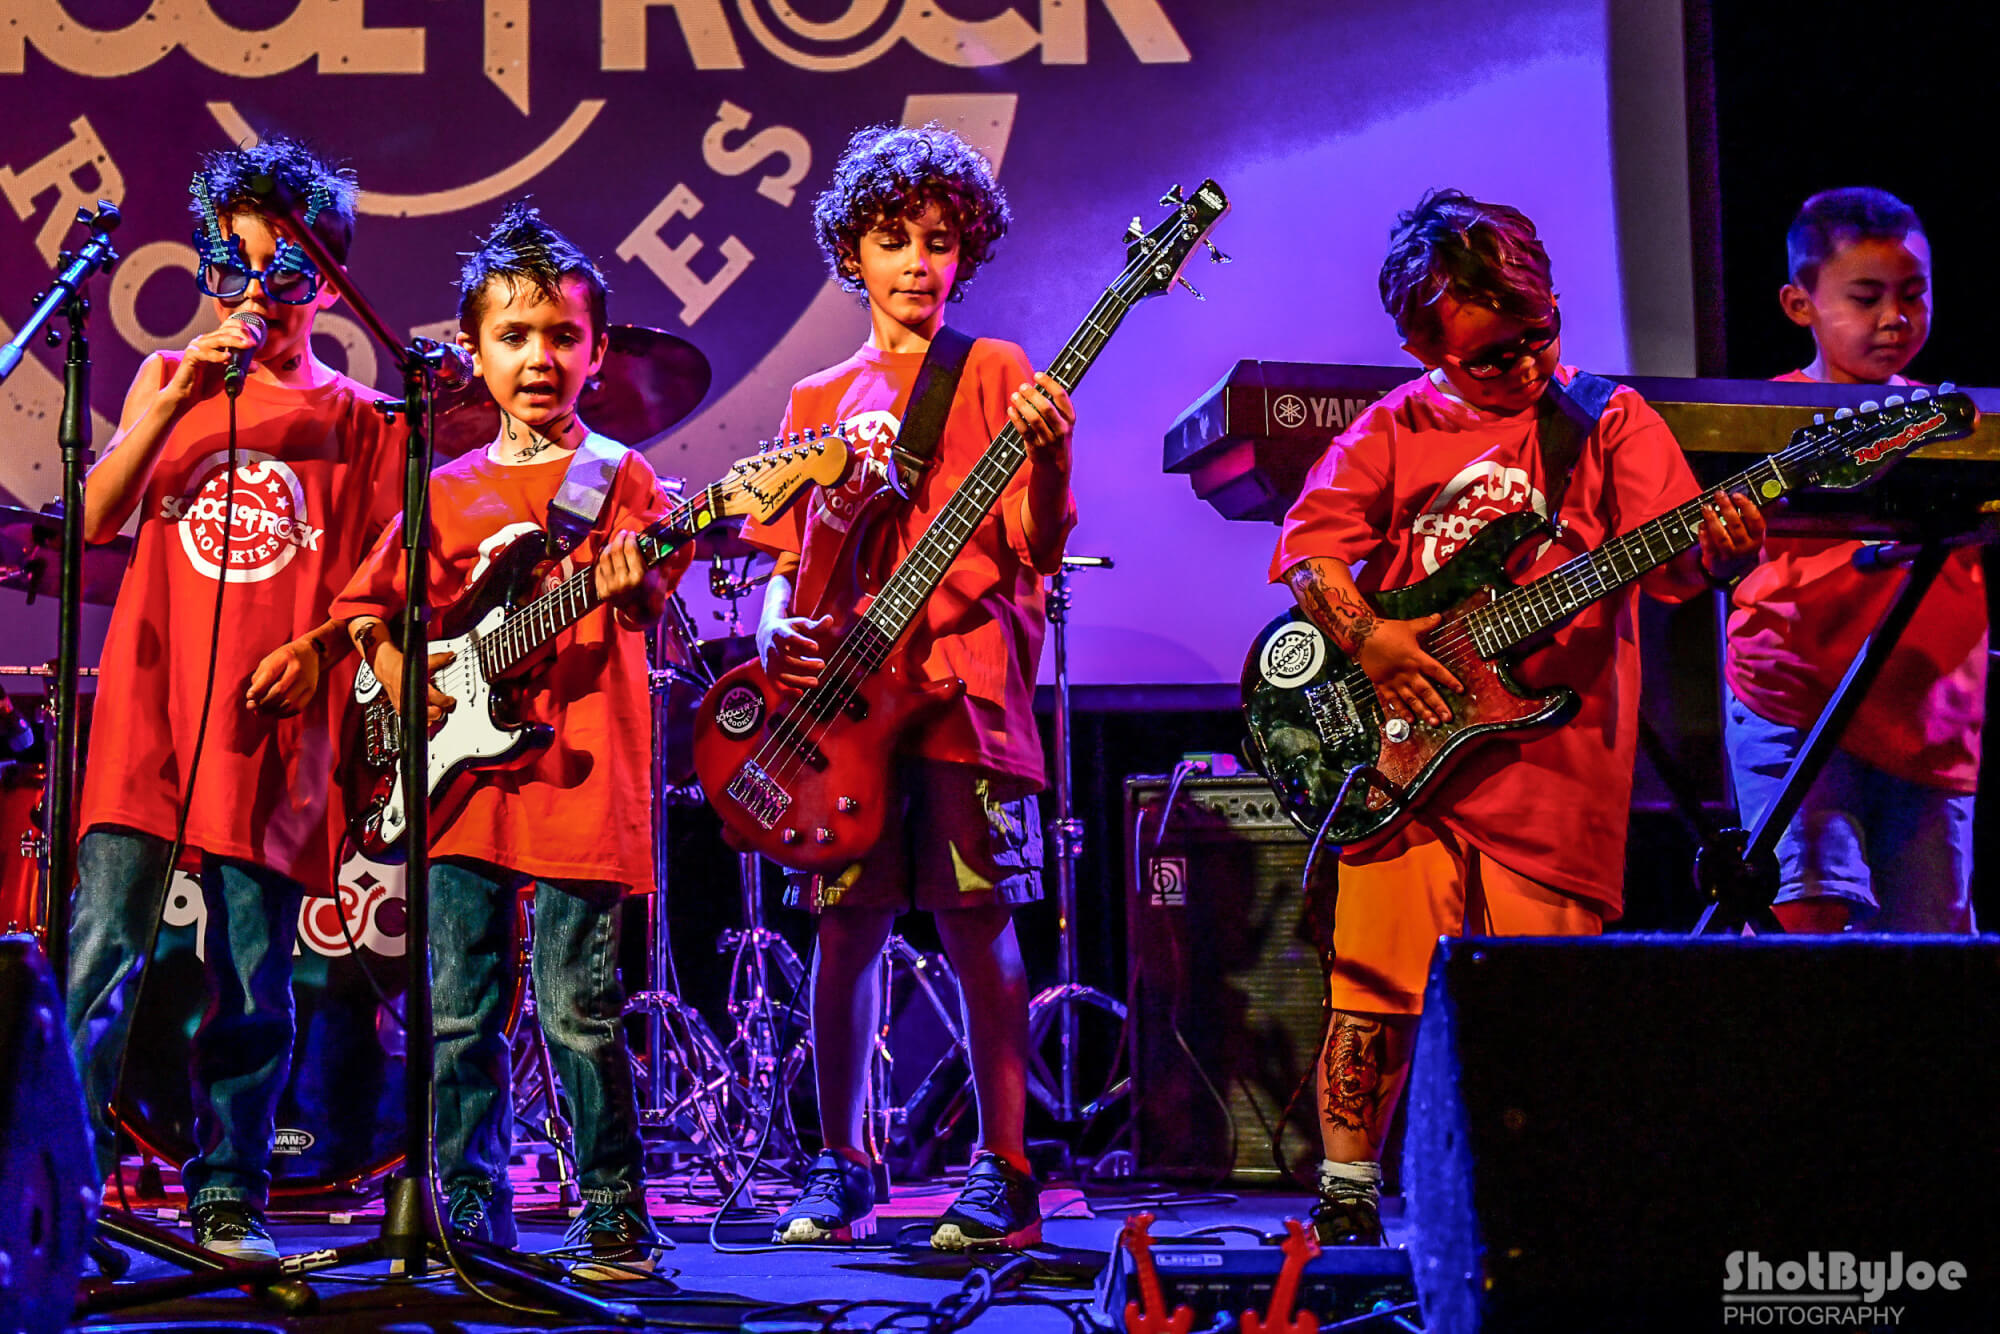 Our Rookies Band plays Festival Hall.